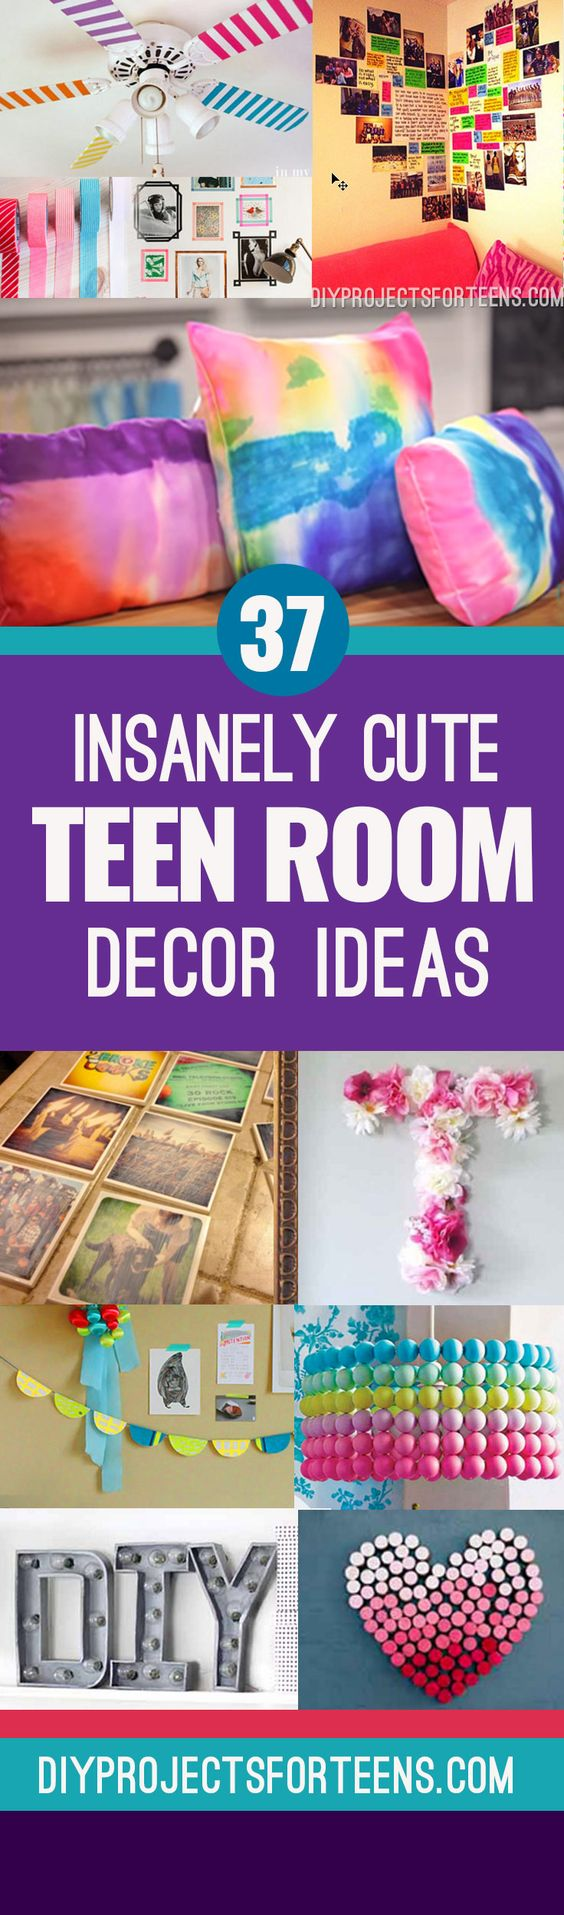 37 insanely cute teen bedroom ideas for diy decor awesome furniture and teenagers - Amazing teenage girl desks ...